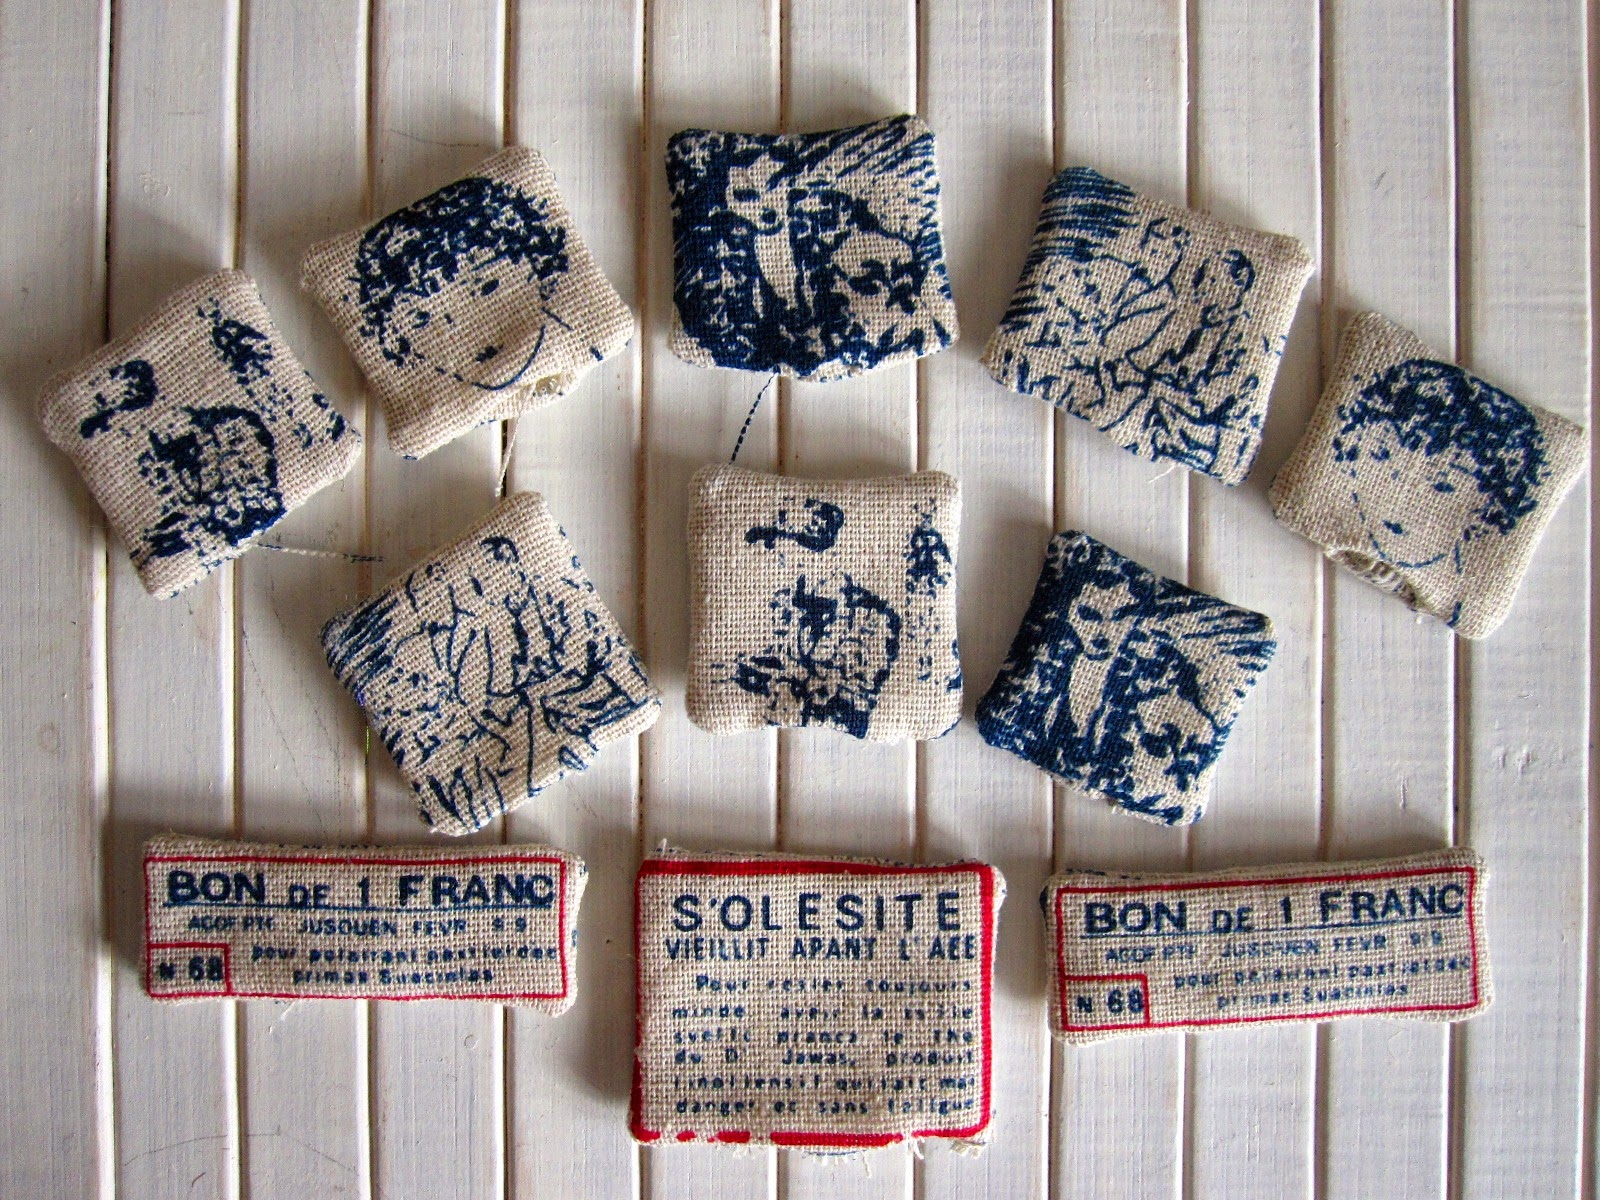 Selection of dolls house miniature cream and blue cushions with a 1920s theme. Unstuffed.